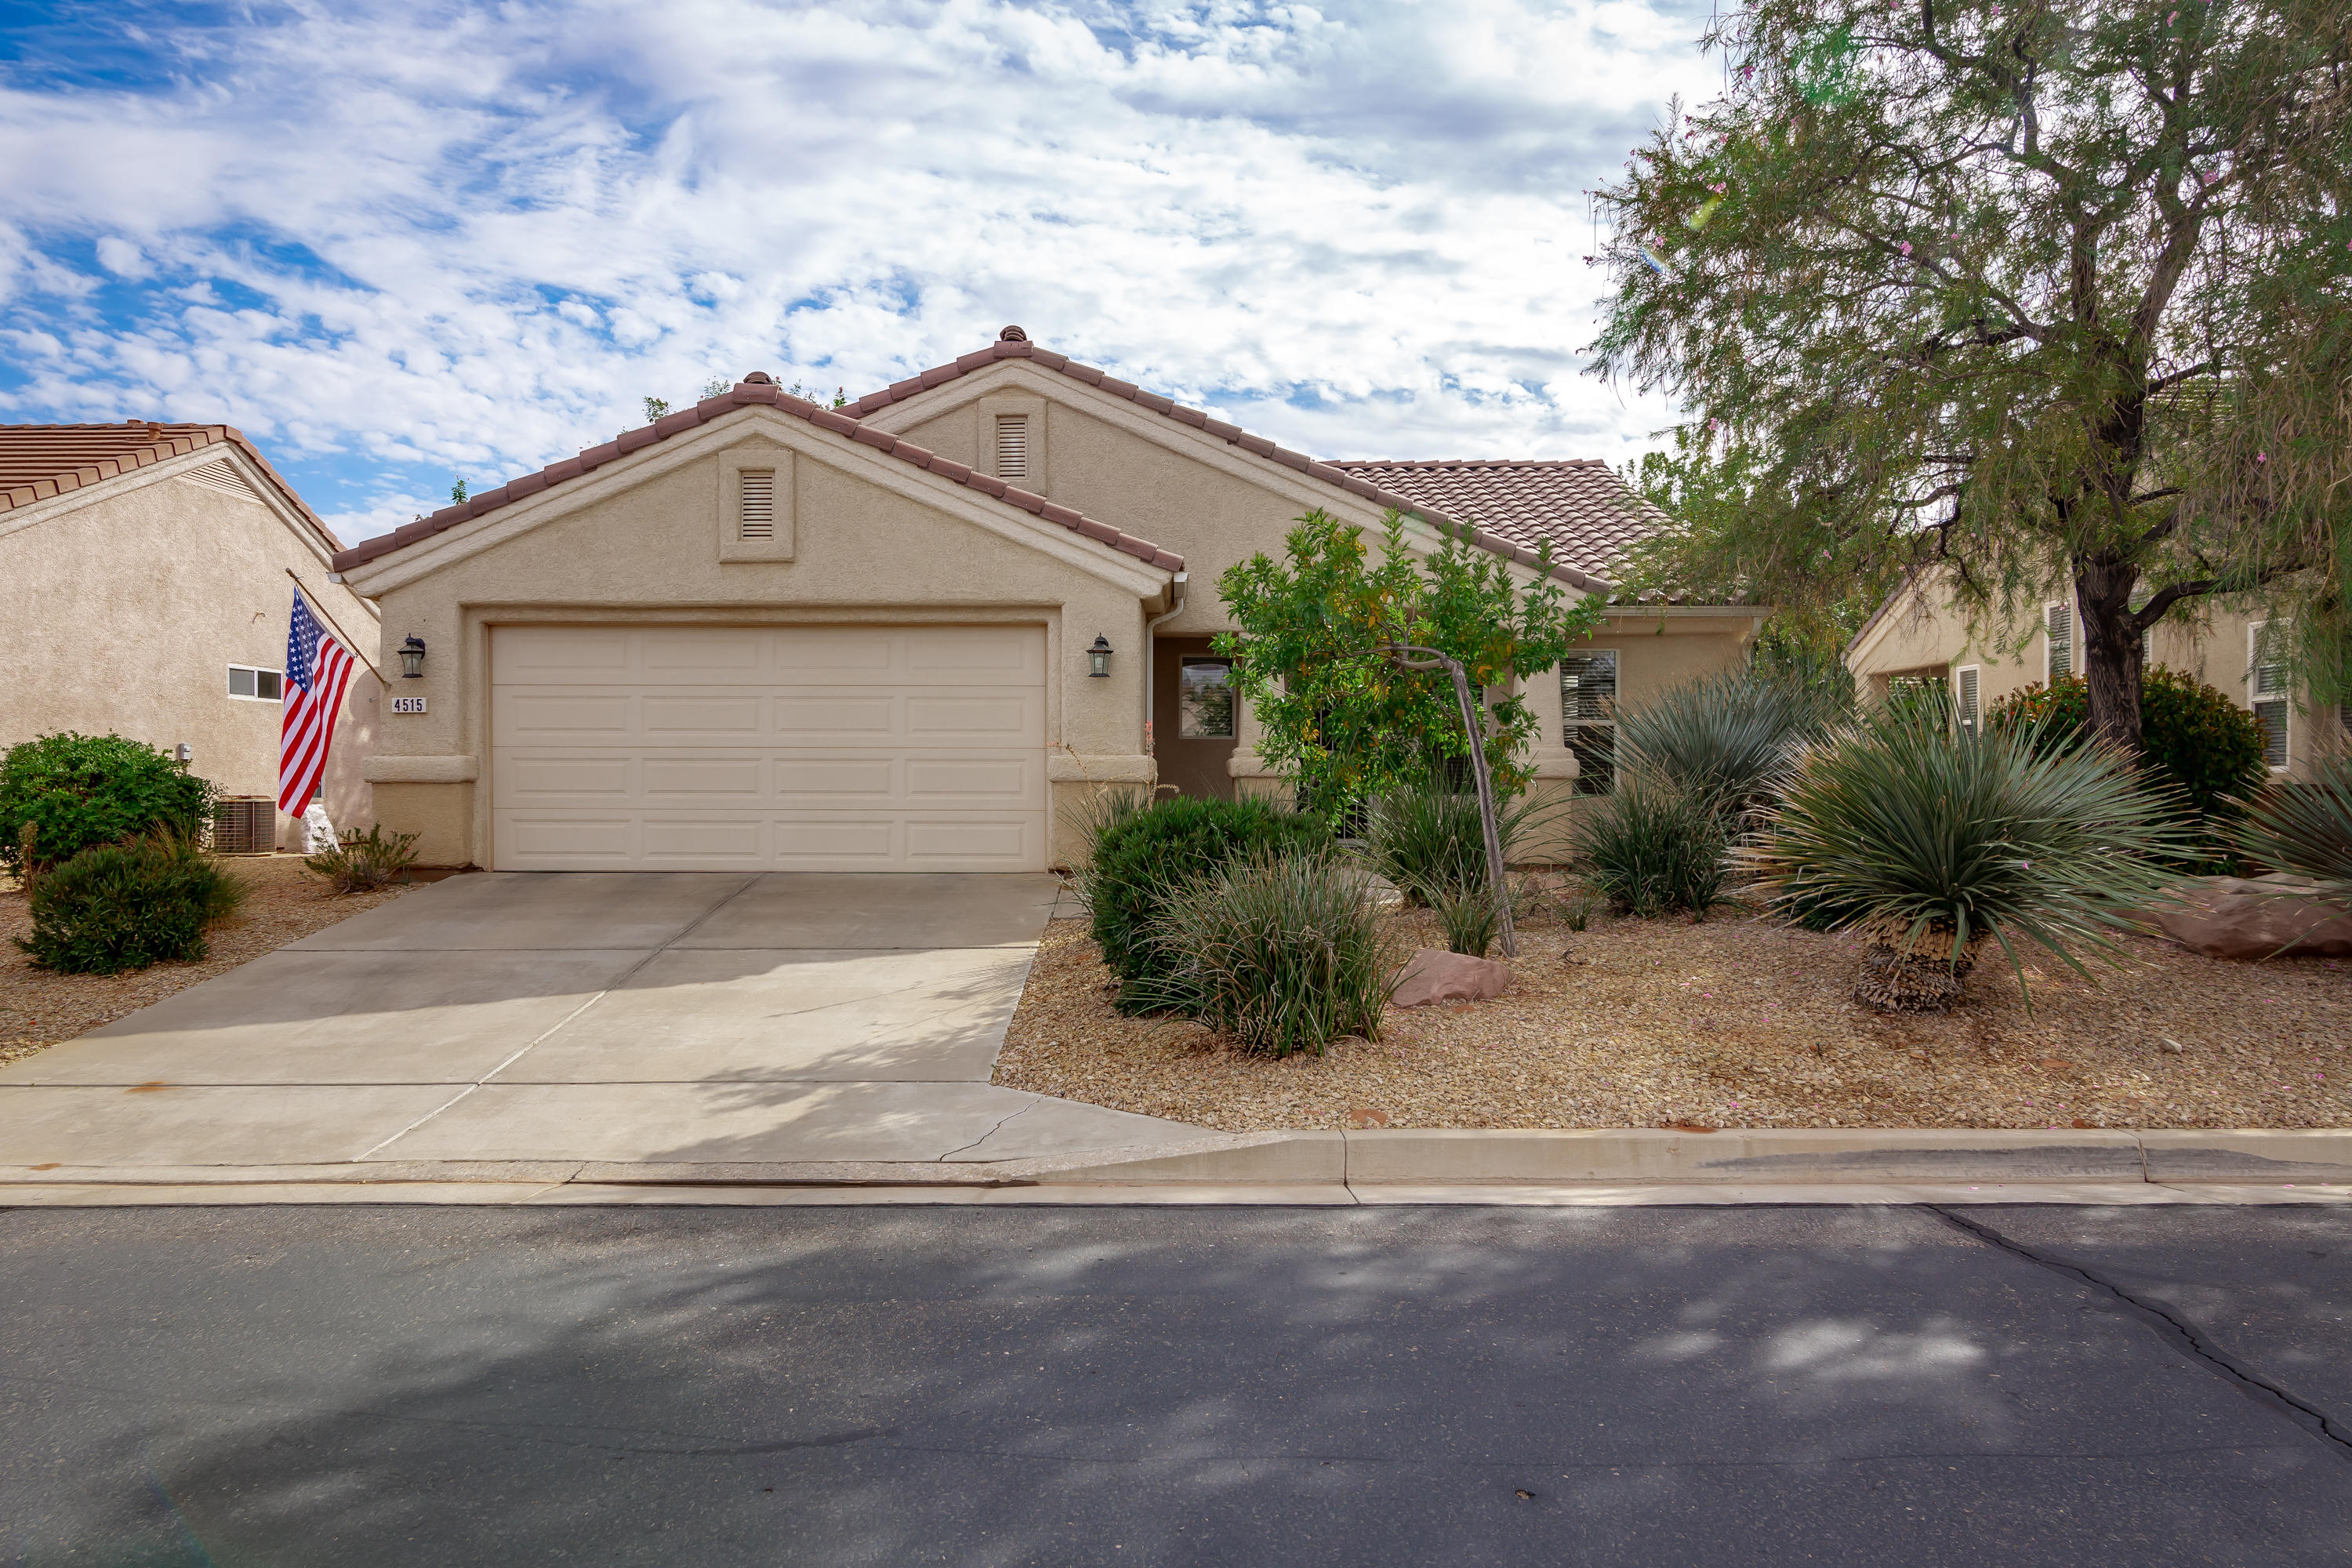 4515 Cold River Dr, St George Ut 84790